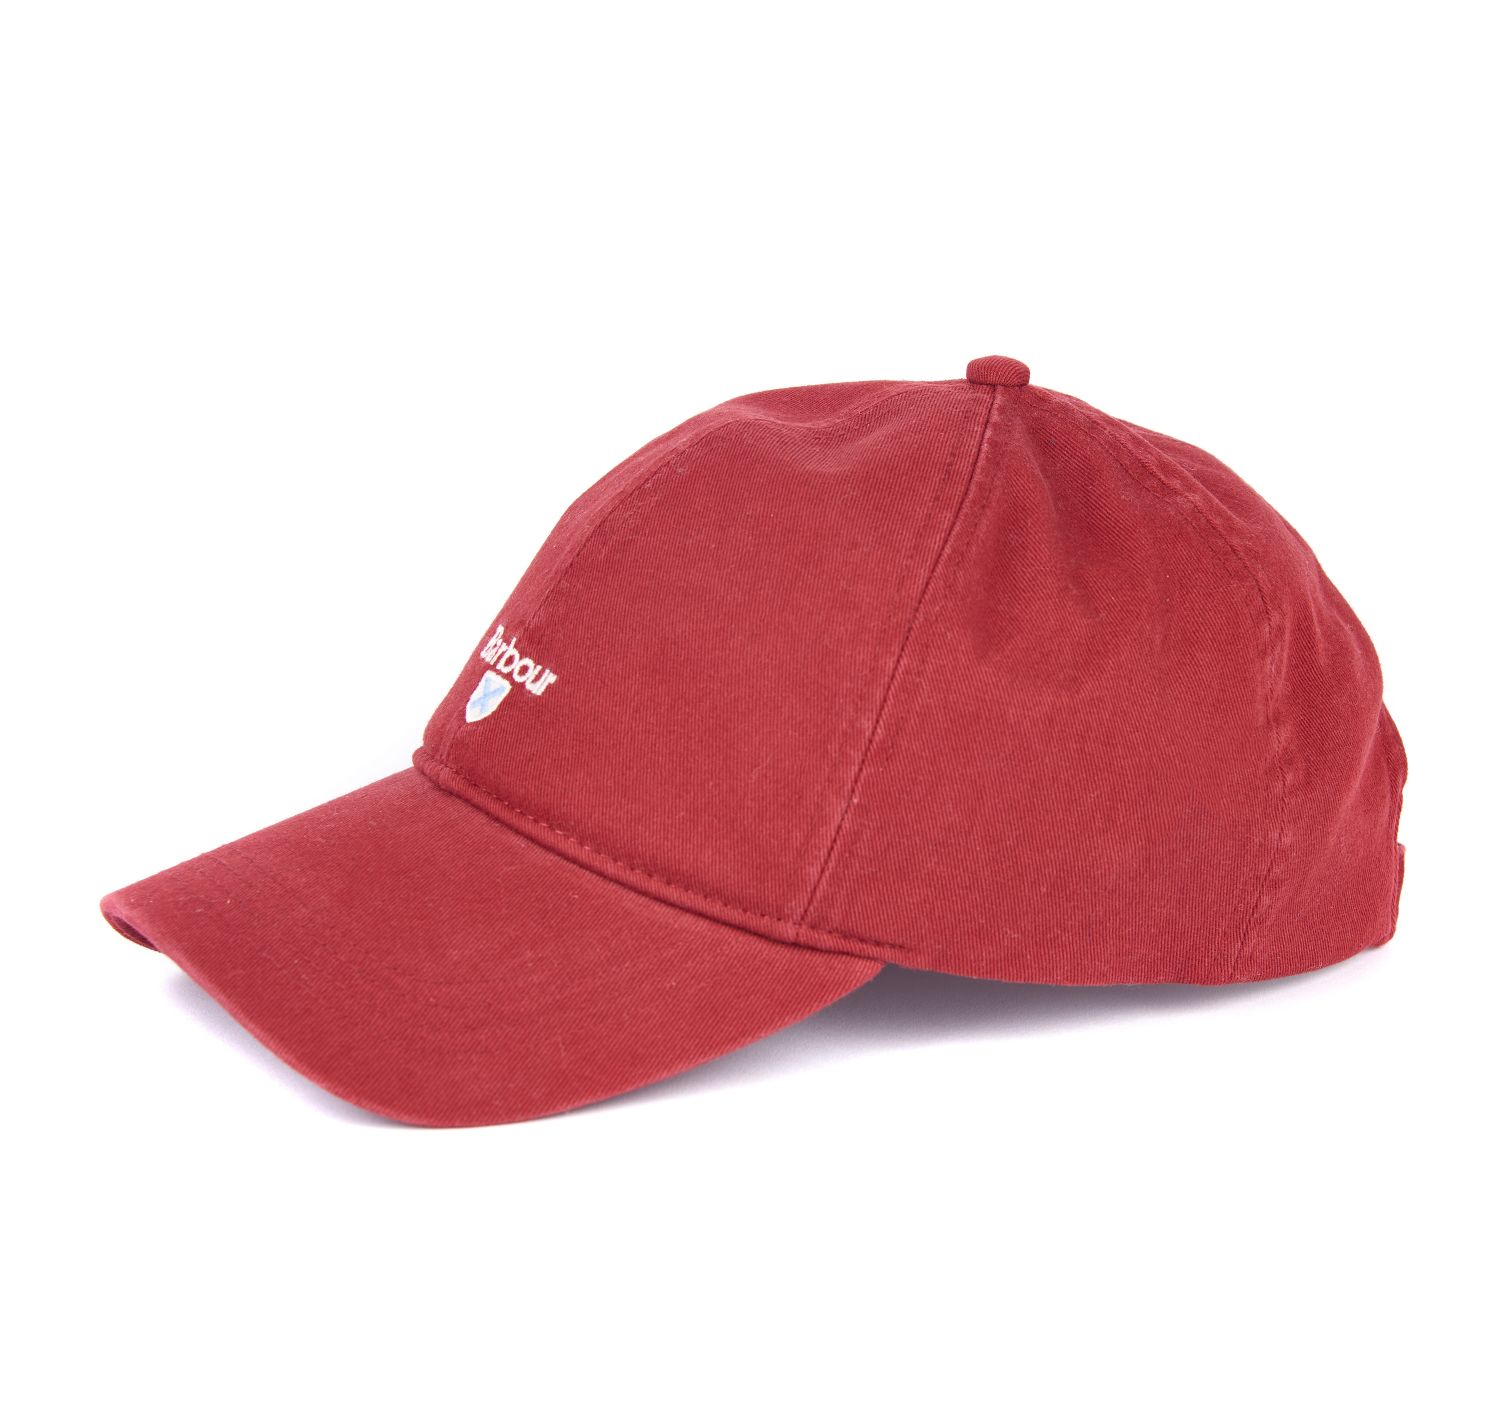 Barbour Branded Cascade Sports Cap Lobster Barbour Lifestyle: From the Classic capsule